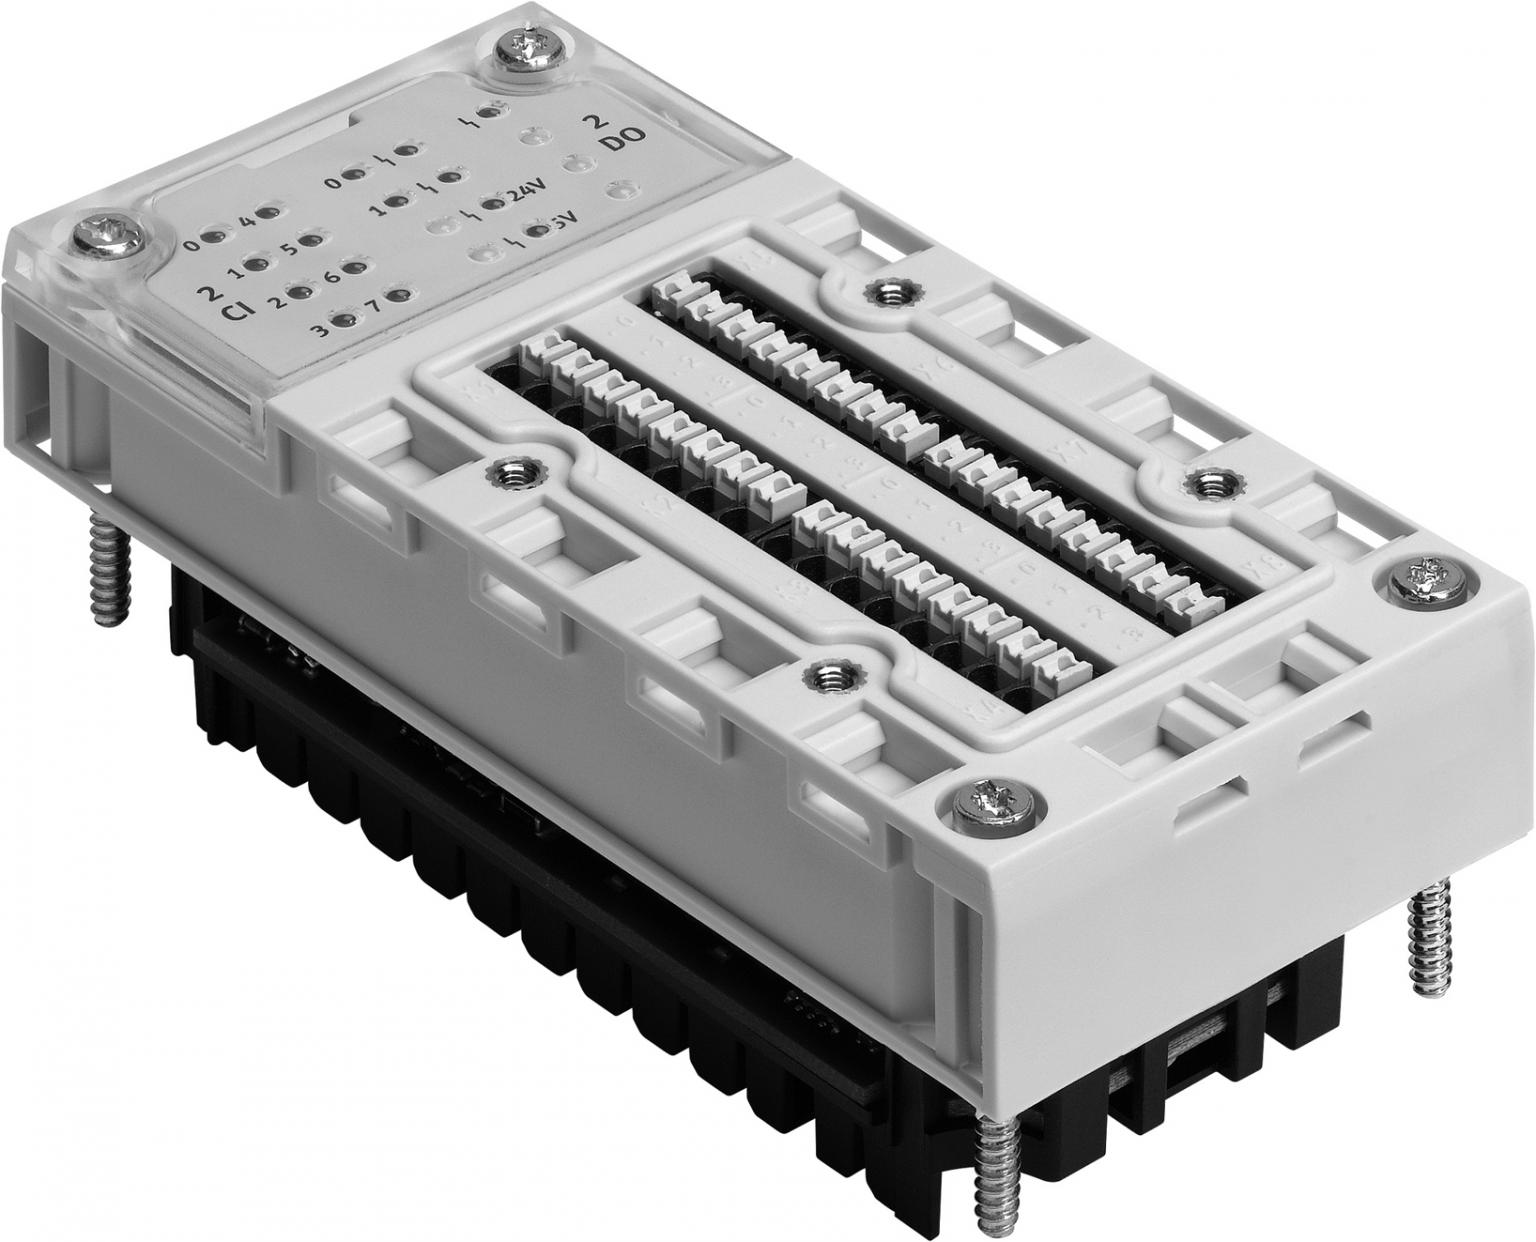 Festo introduces the latest addition to its CPX Modular Automation Platform, the CPX-2ZE2DA-PI Counter Module